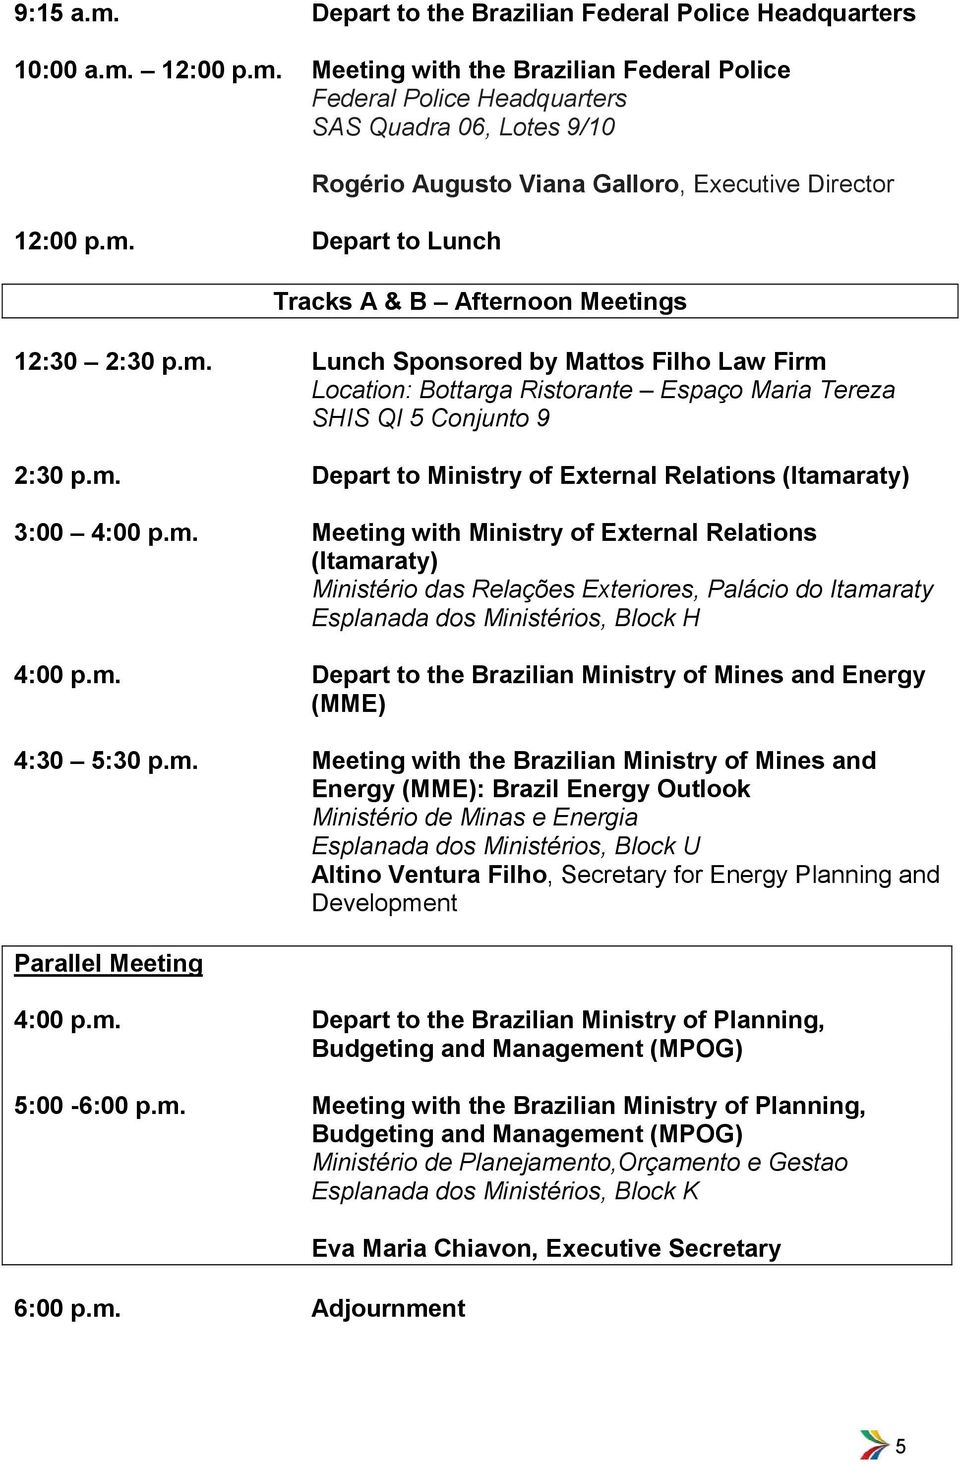 m. Depart to the Brazilian Ministry of Mines and Energy (MME) 4:30 5:30 p.m. Meeting with the Brazilian Ministry of Mines and Energy (MME): Brazil Energy Outlook Ministério de Minas e Energia